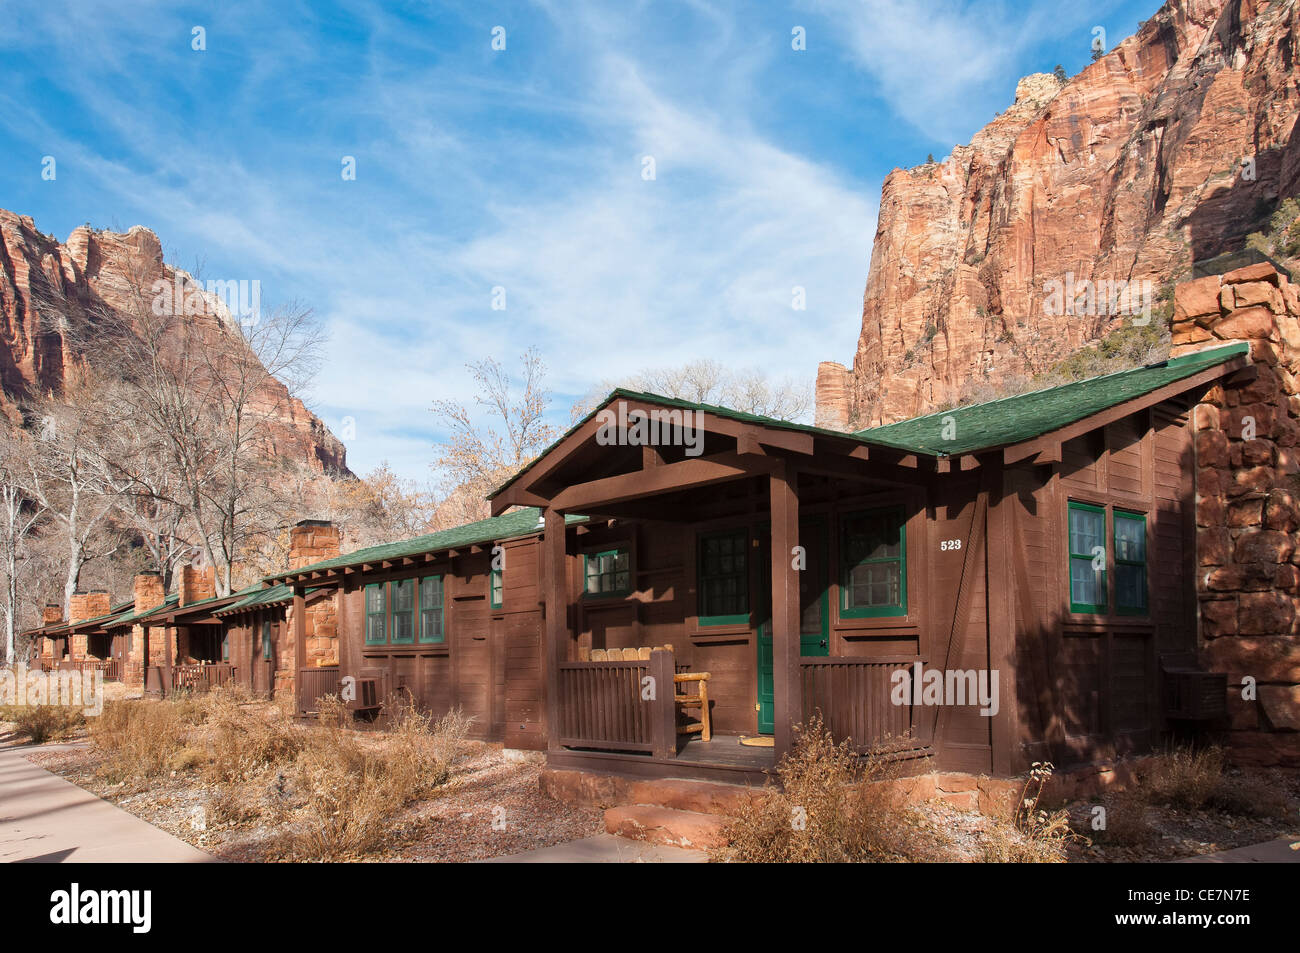 home beaver and op luxurious homeaway cabins vacation mountain cabin utah rental